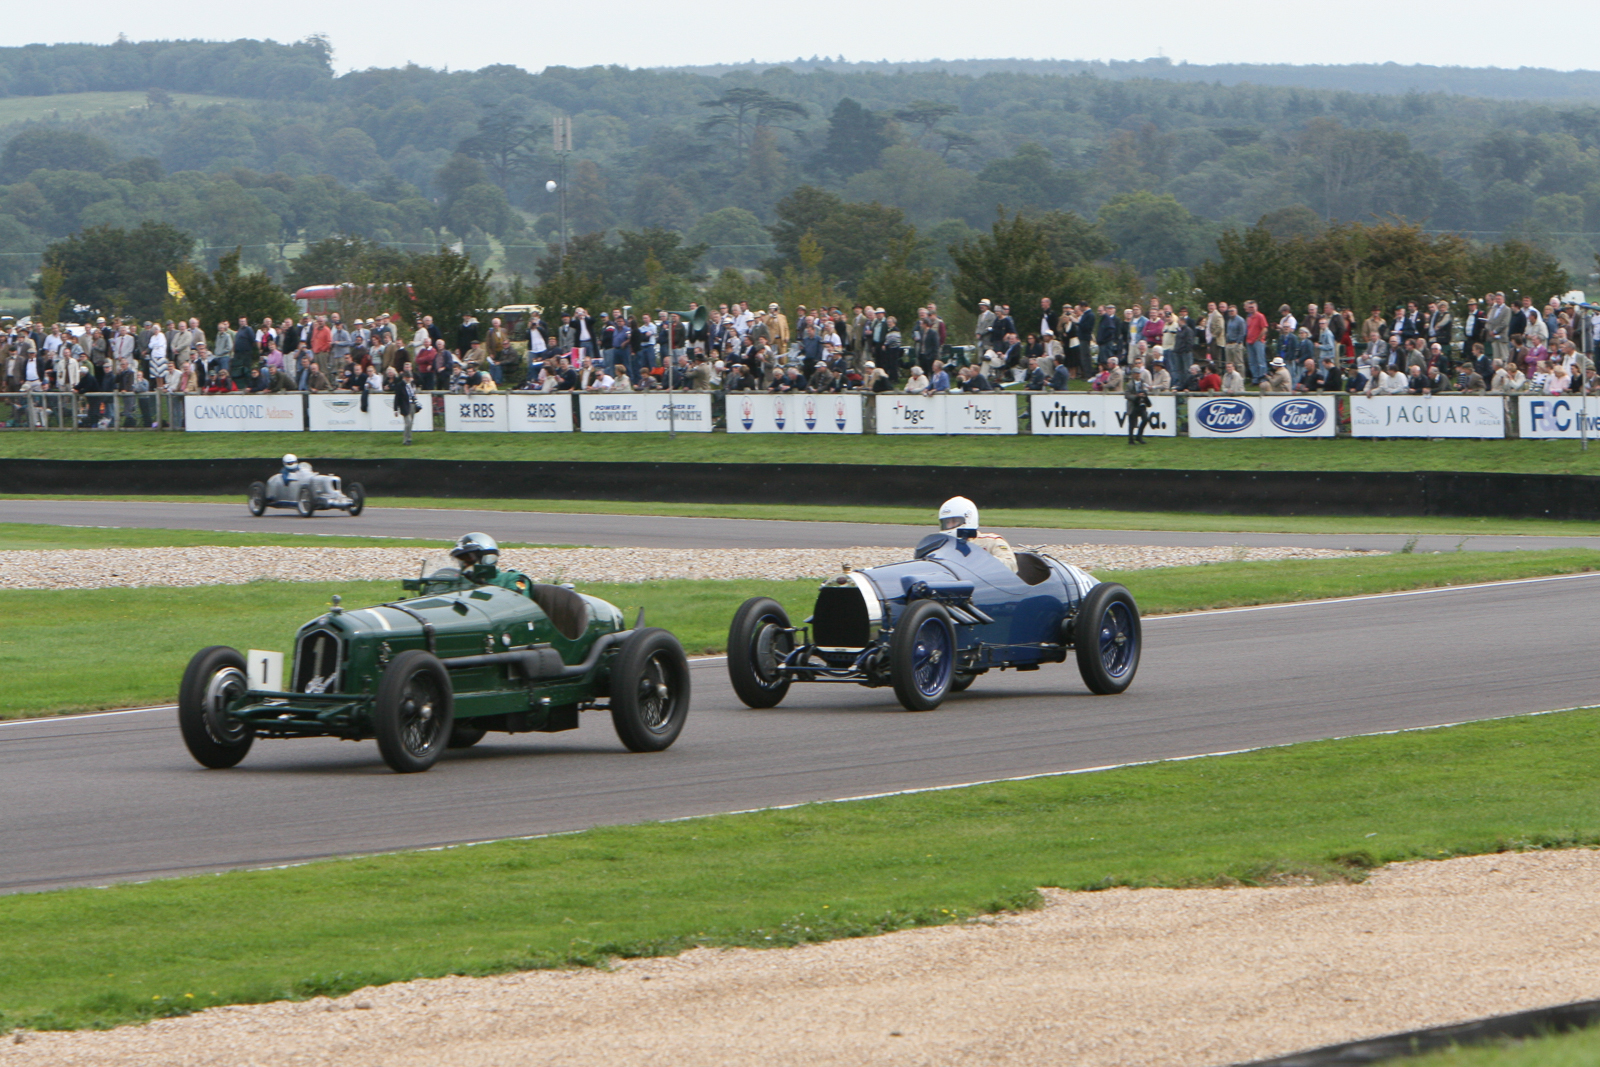 20070902 - Goodwood Revival -070902 -001